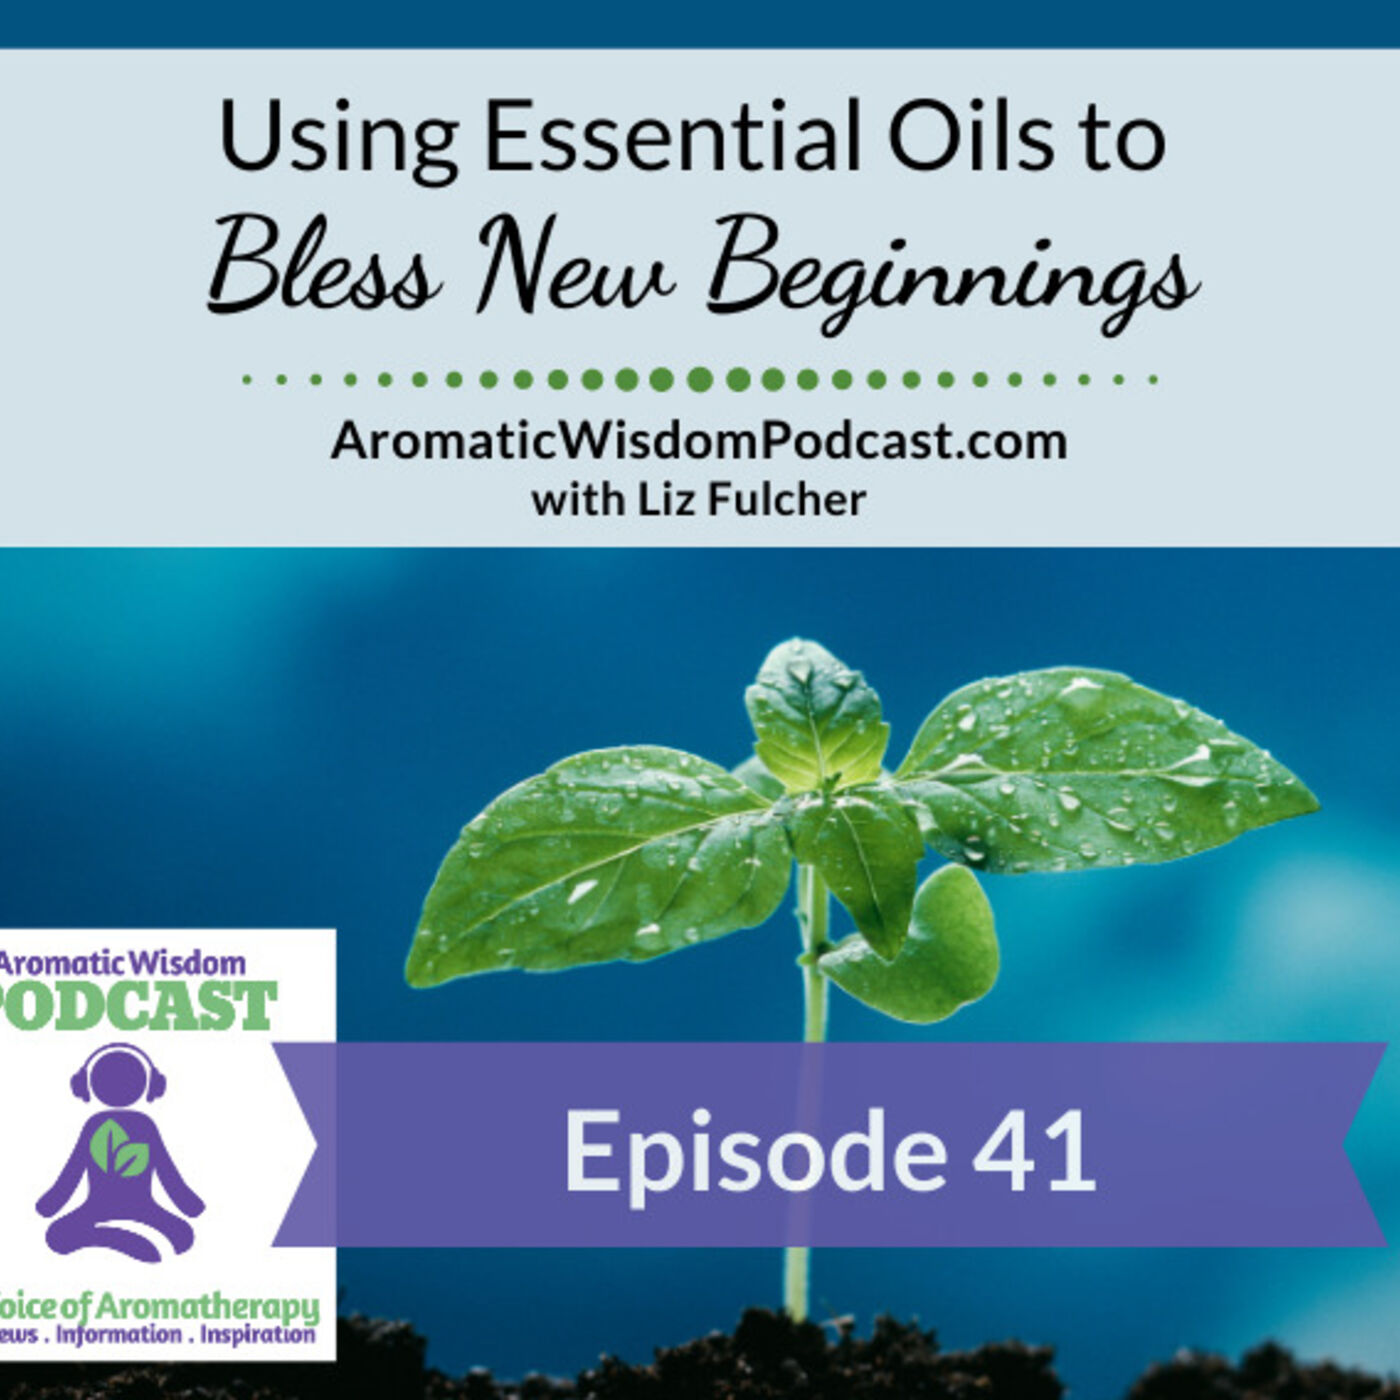 AWP 041: Using Essential Oils to Bless New Beginnings